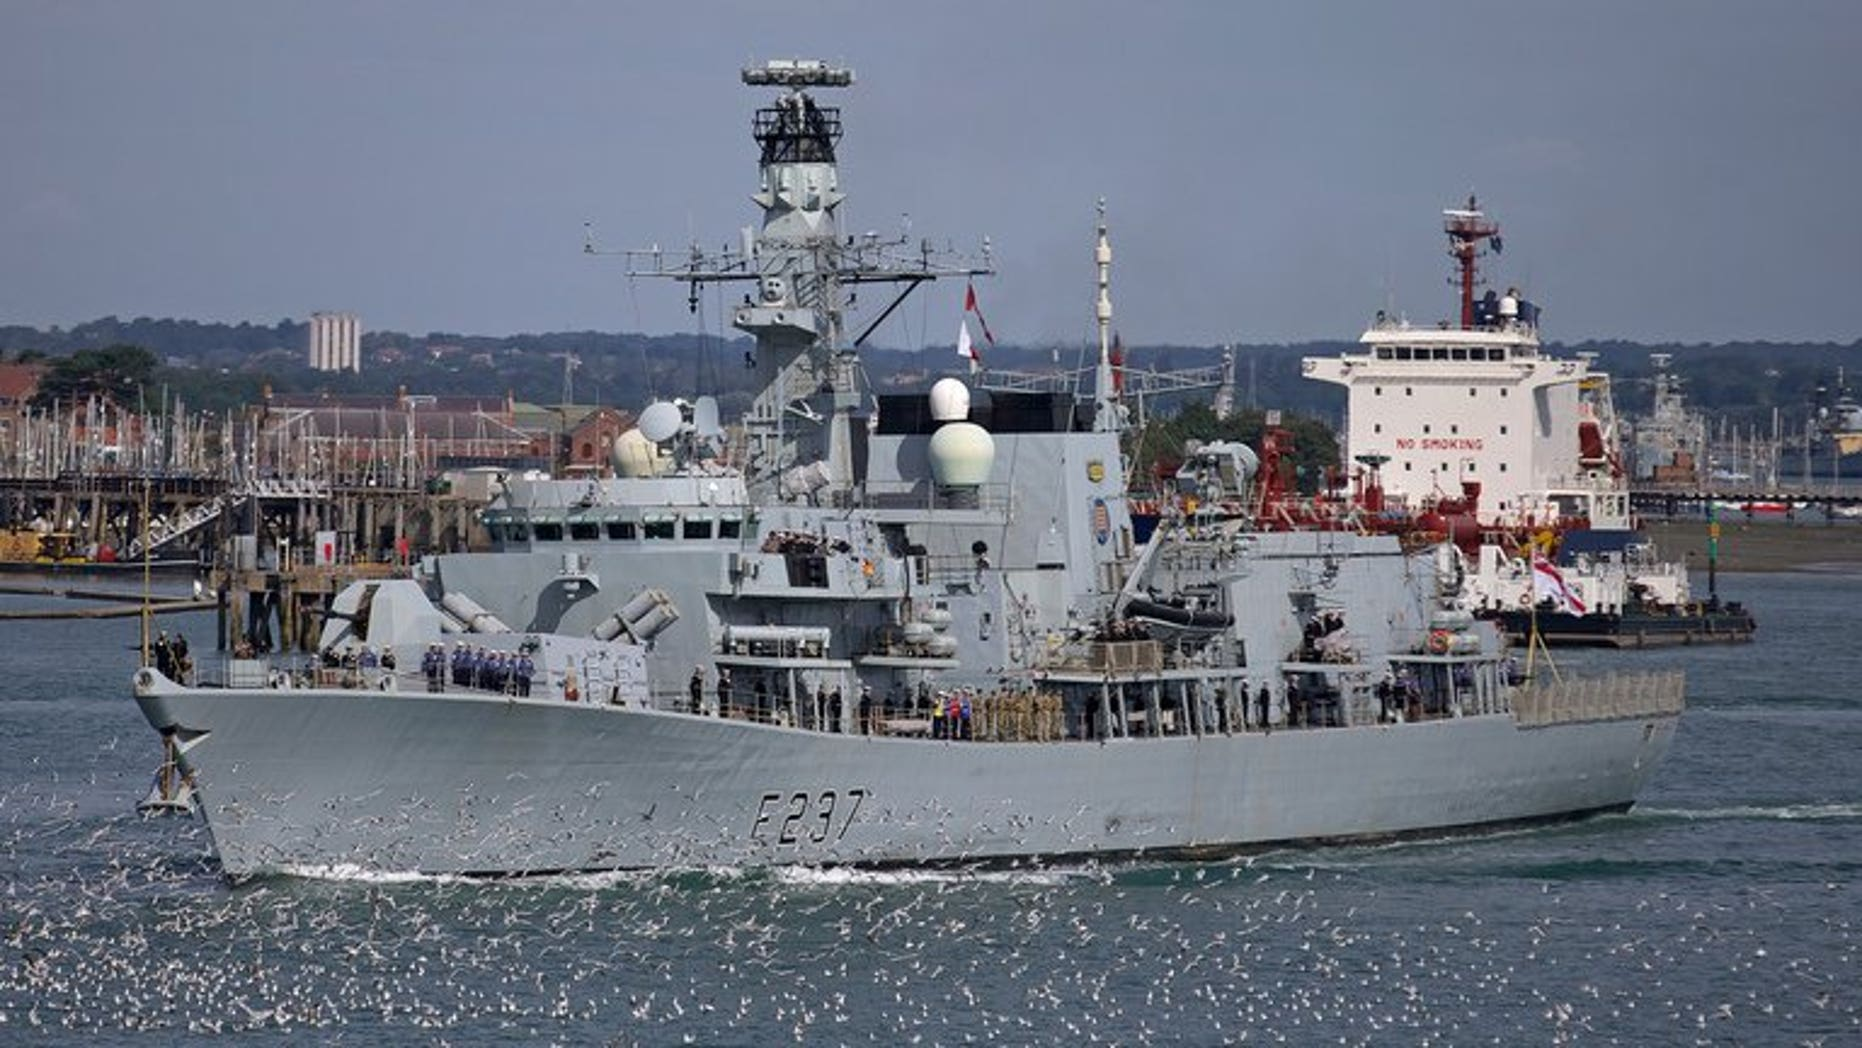 Britain's HMS Westminster leaves for Gibraltar from Portsmouth on August 13, 2013. The British warship HMS Westminster set sail on a training exercise that will include a stop at Gibraltar, the territory at the centre of a row between Britain and Spain.